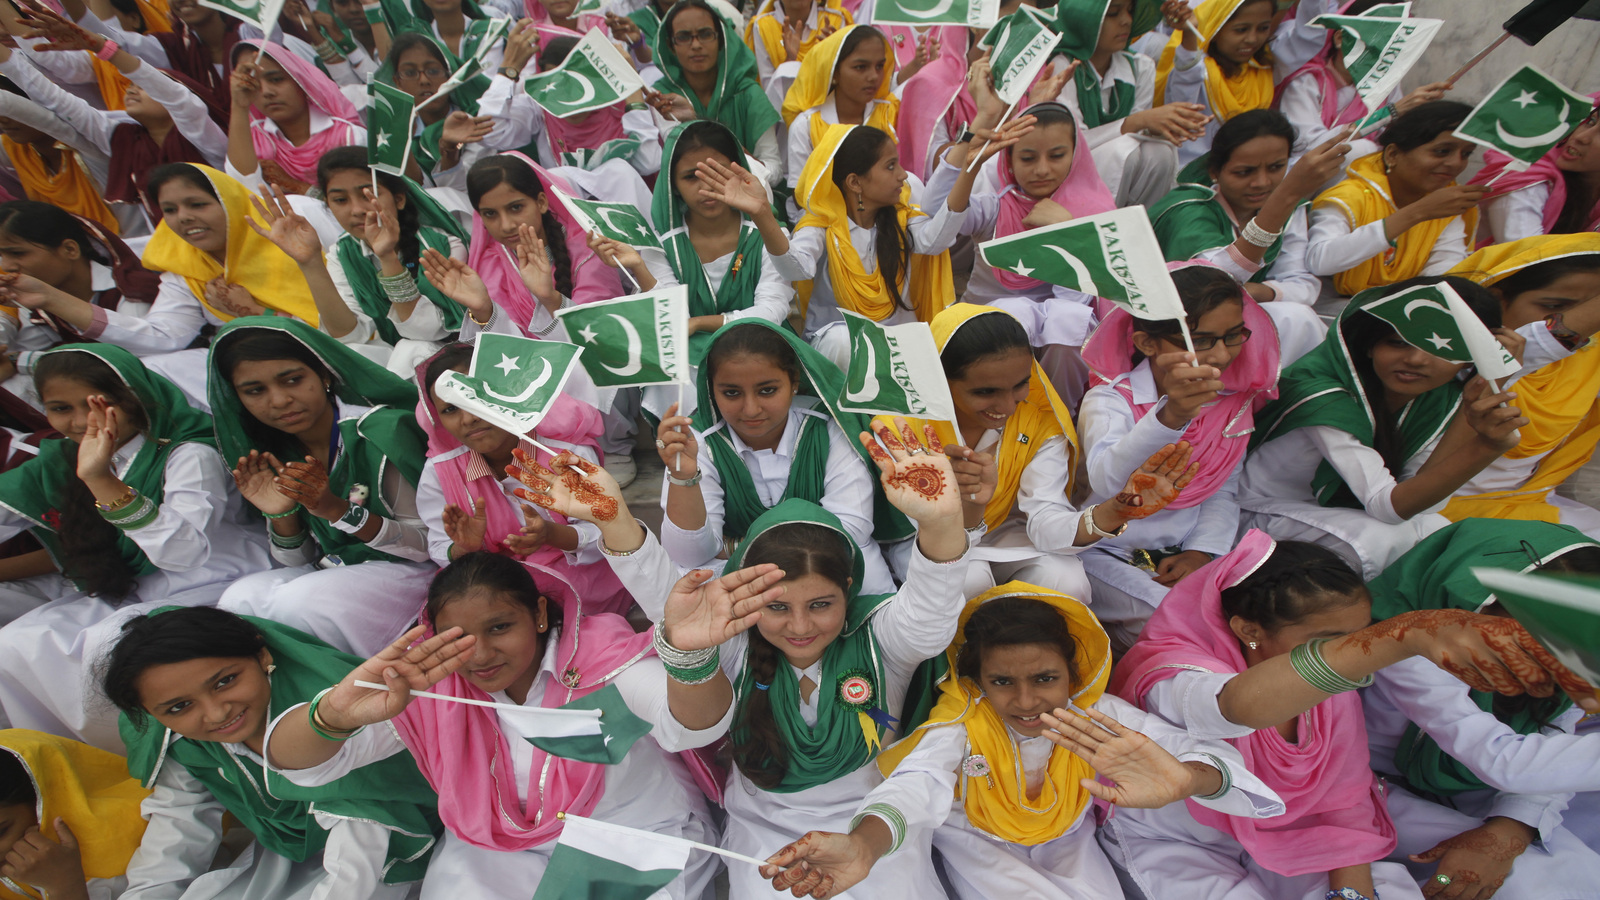 Female students wave Pakistan's national flag at a ceremony to celebrate the country's Independence Day at the mausoleum of Muhammad Ali Jinnah in Karachi